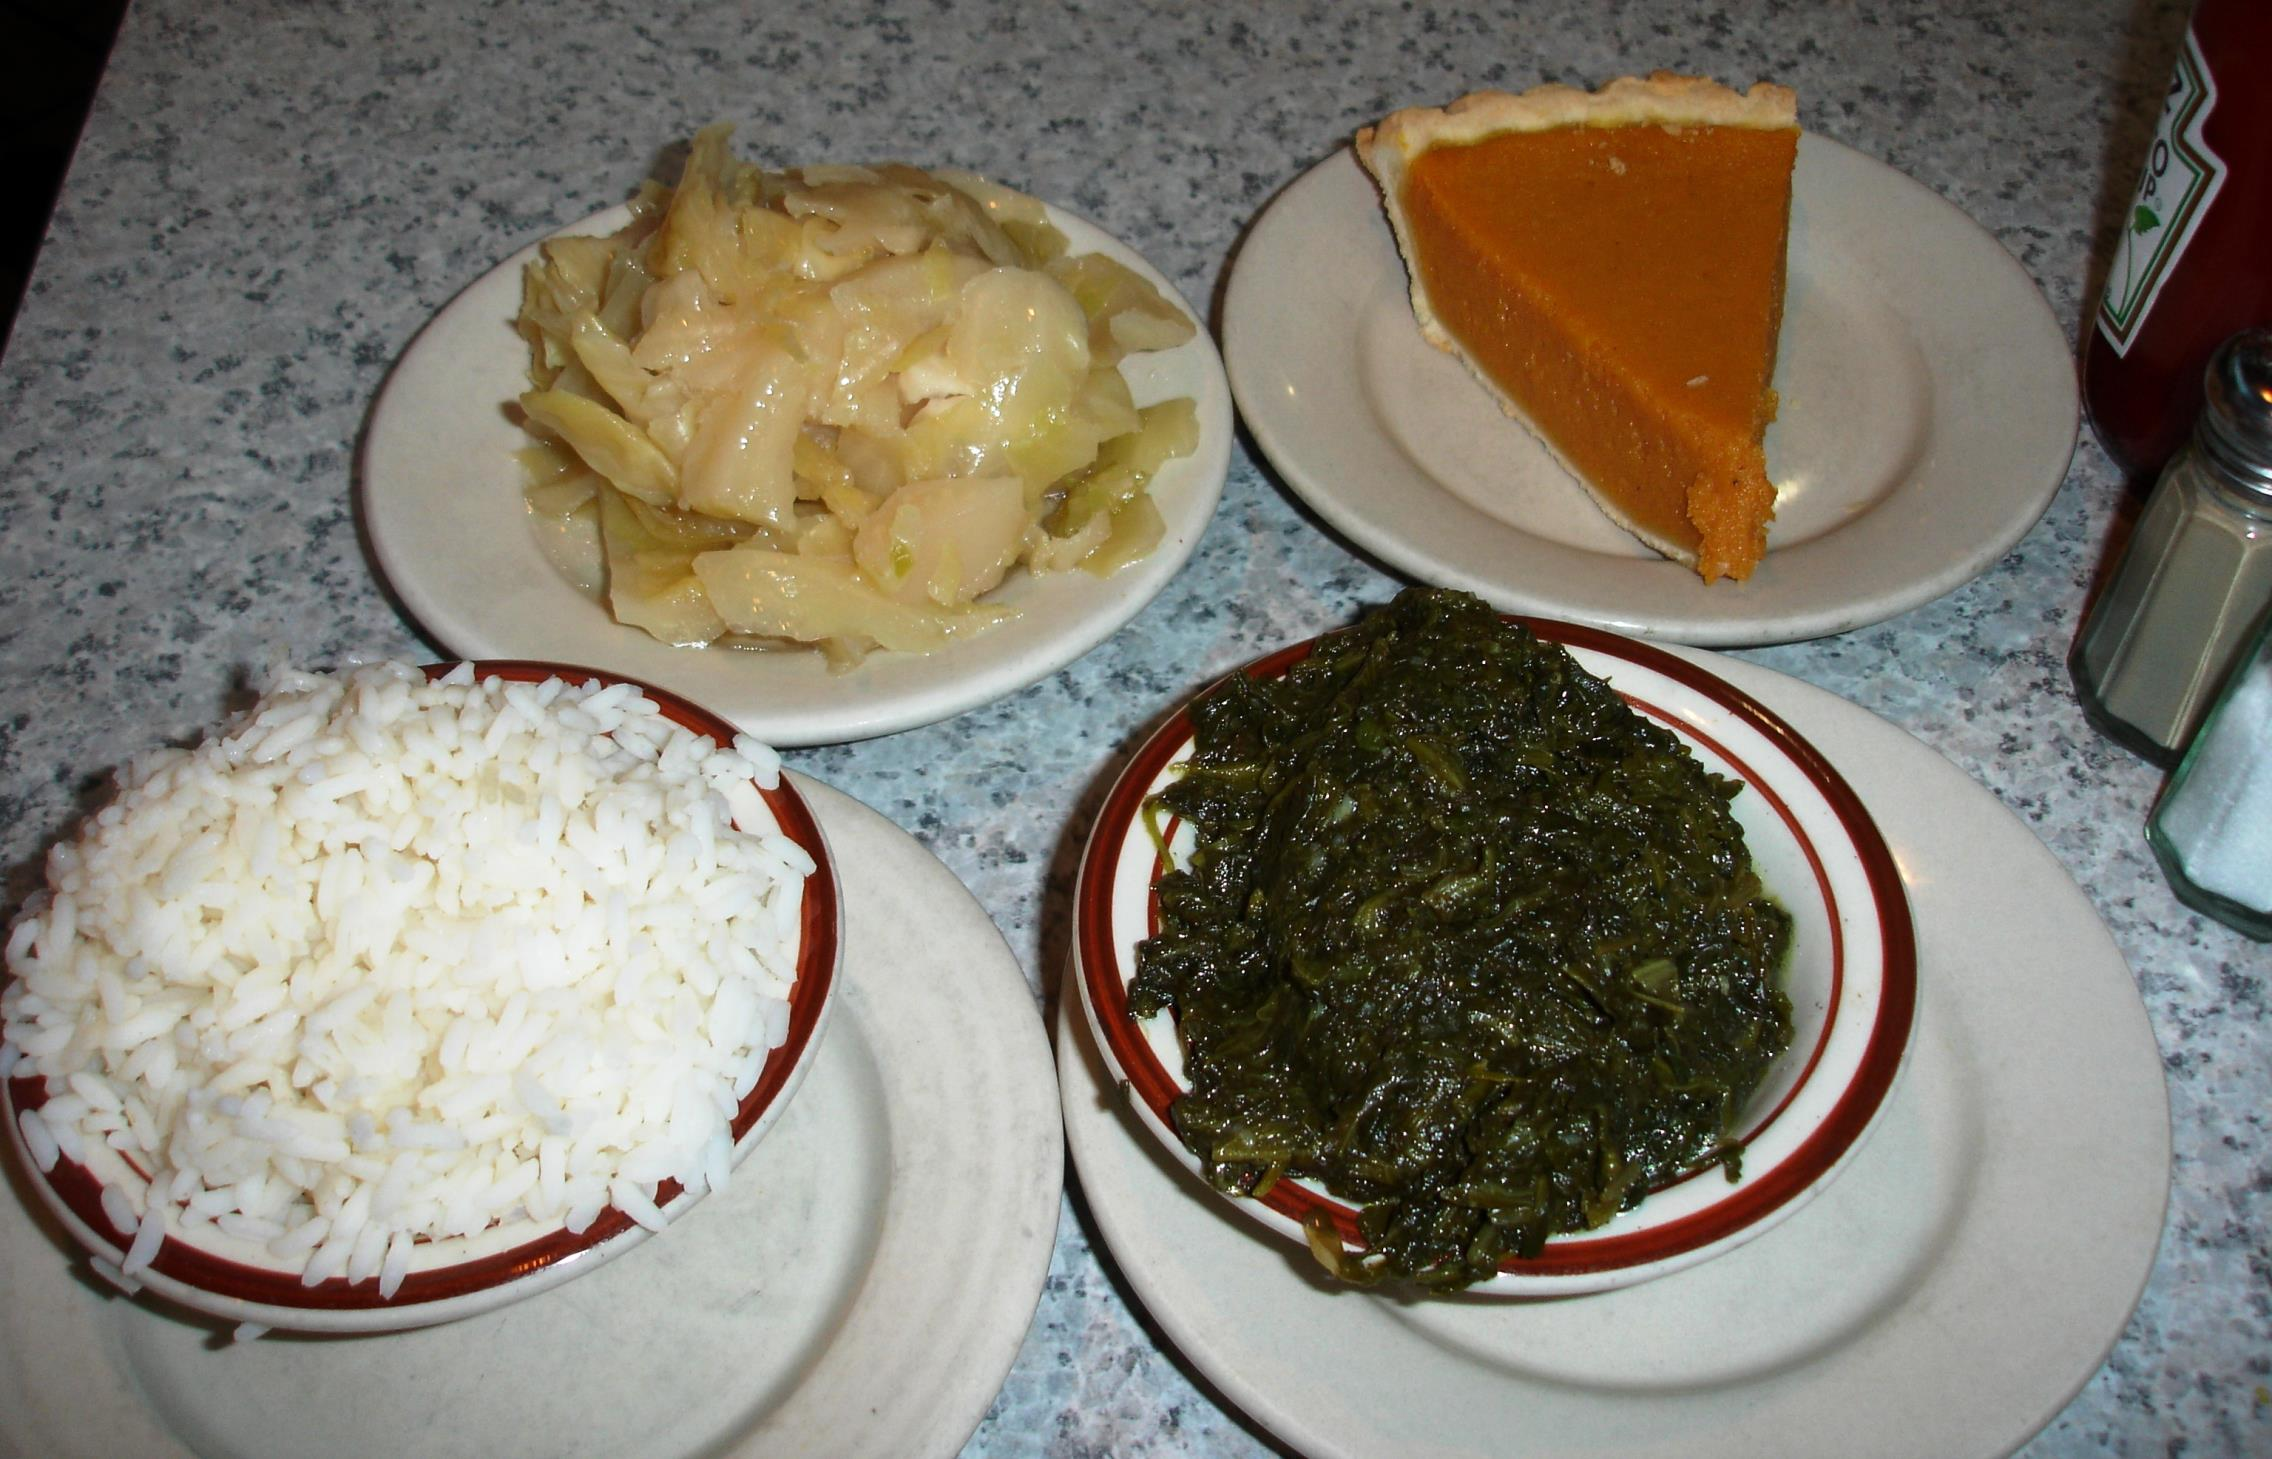 Cabbage, white rice, greens - all were fine. The pumpkin pie was exceptional.